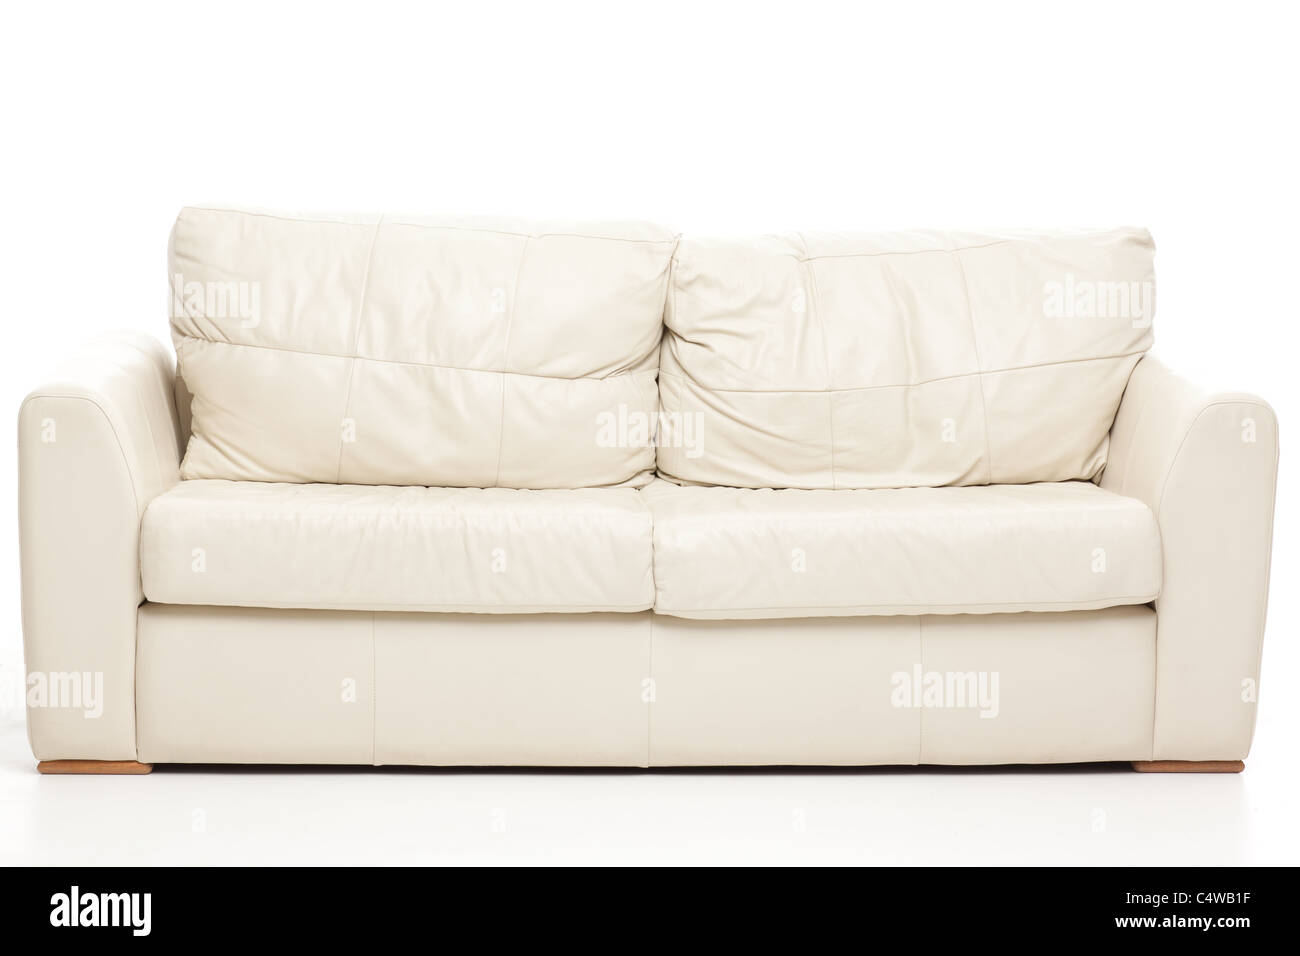 simple studio still life shot of a modern couch - Stock Image